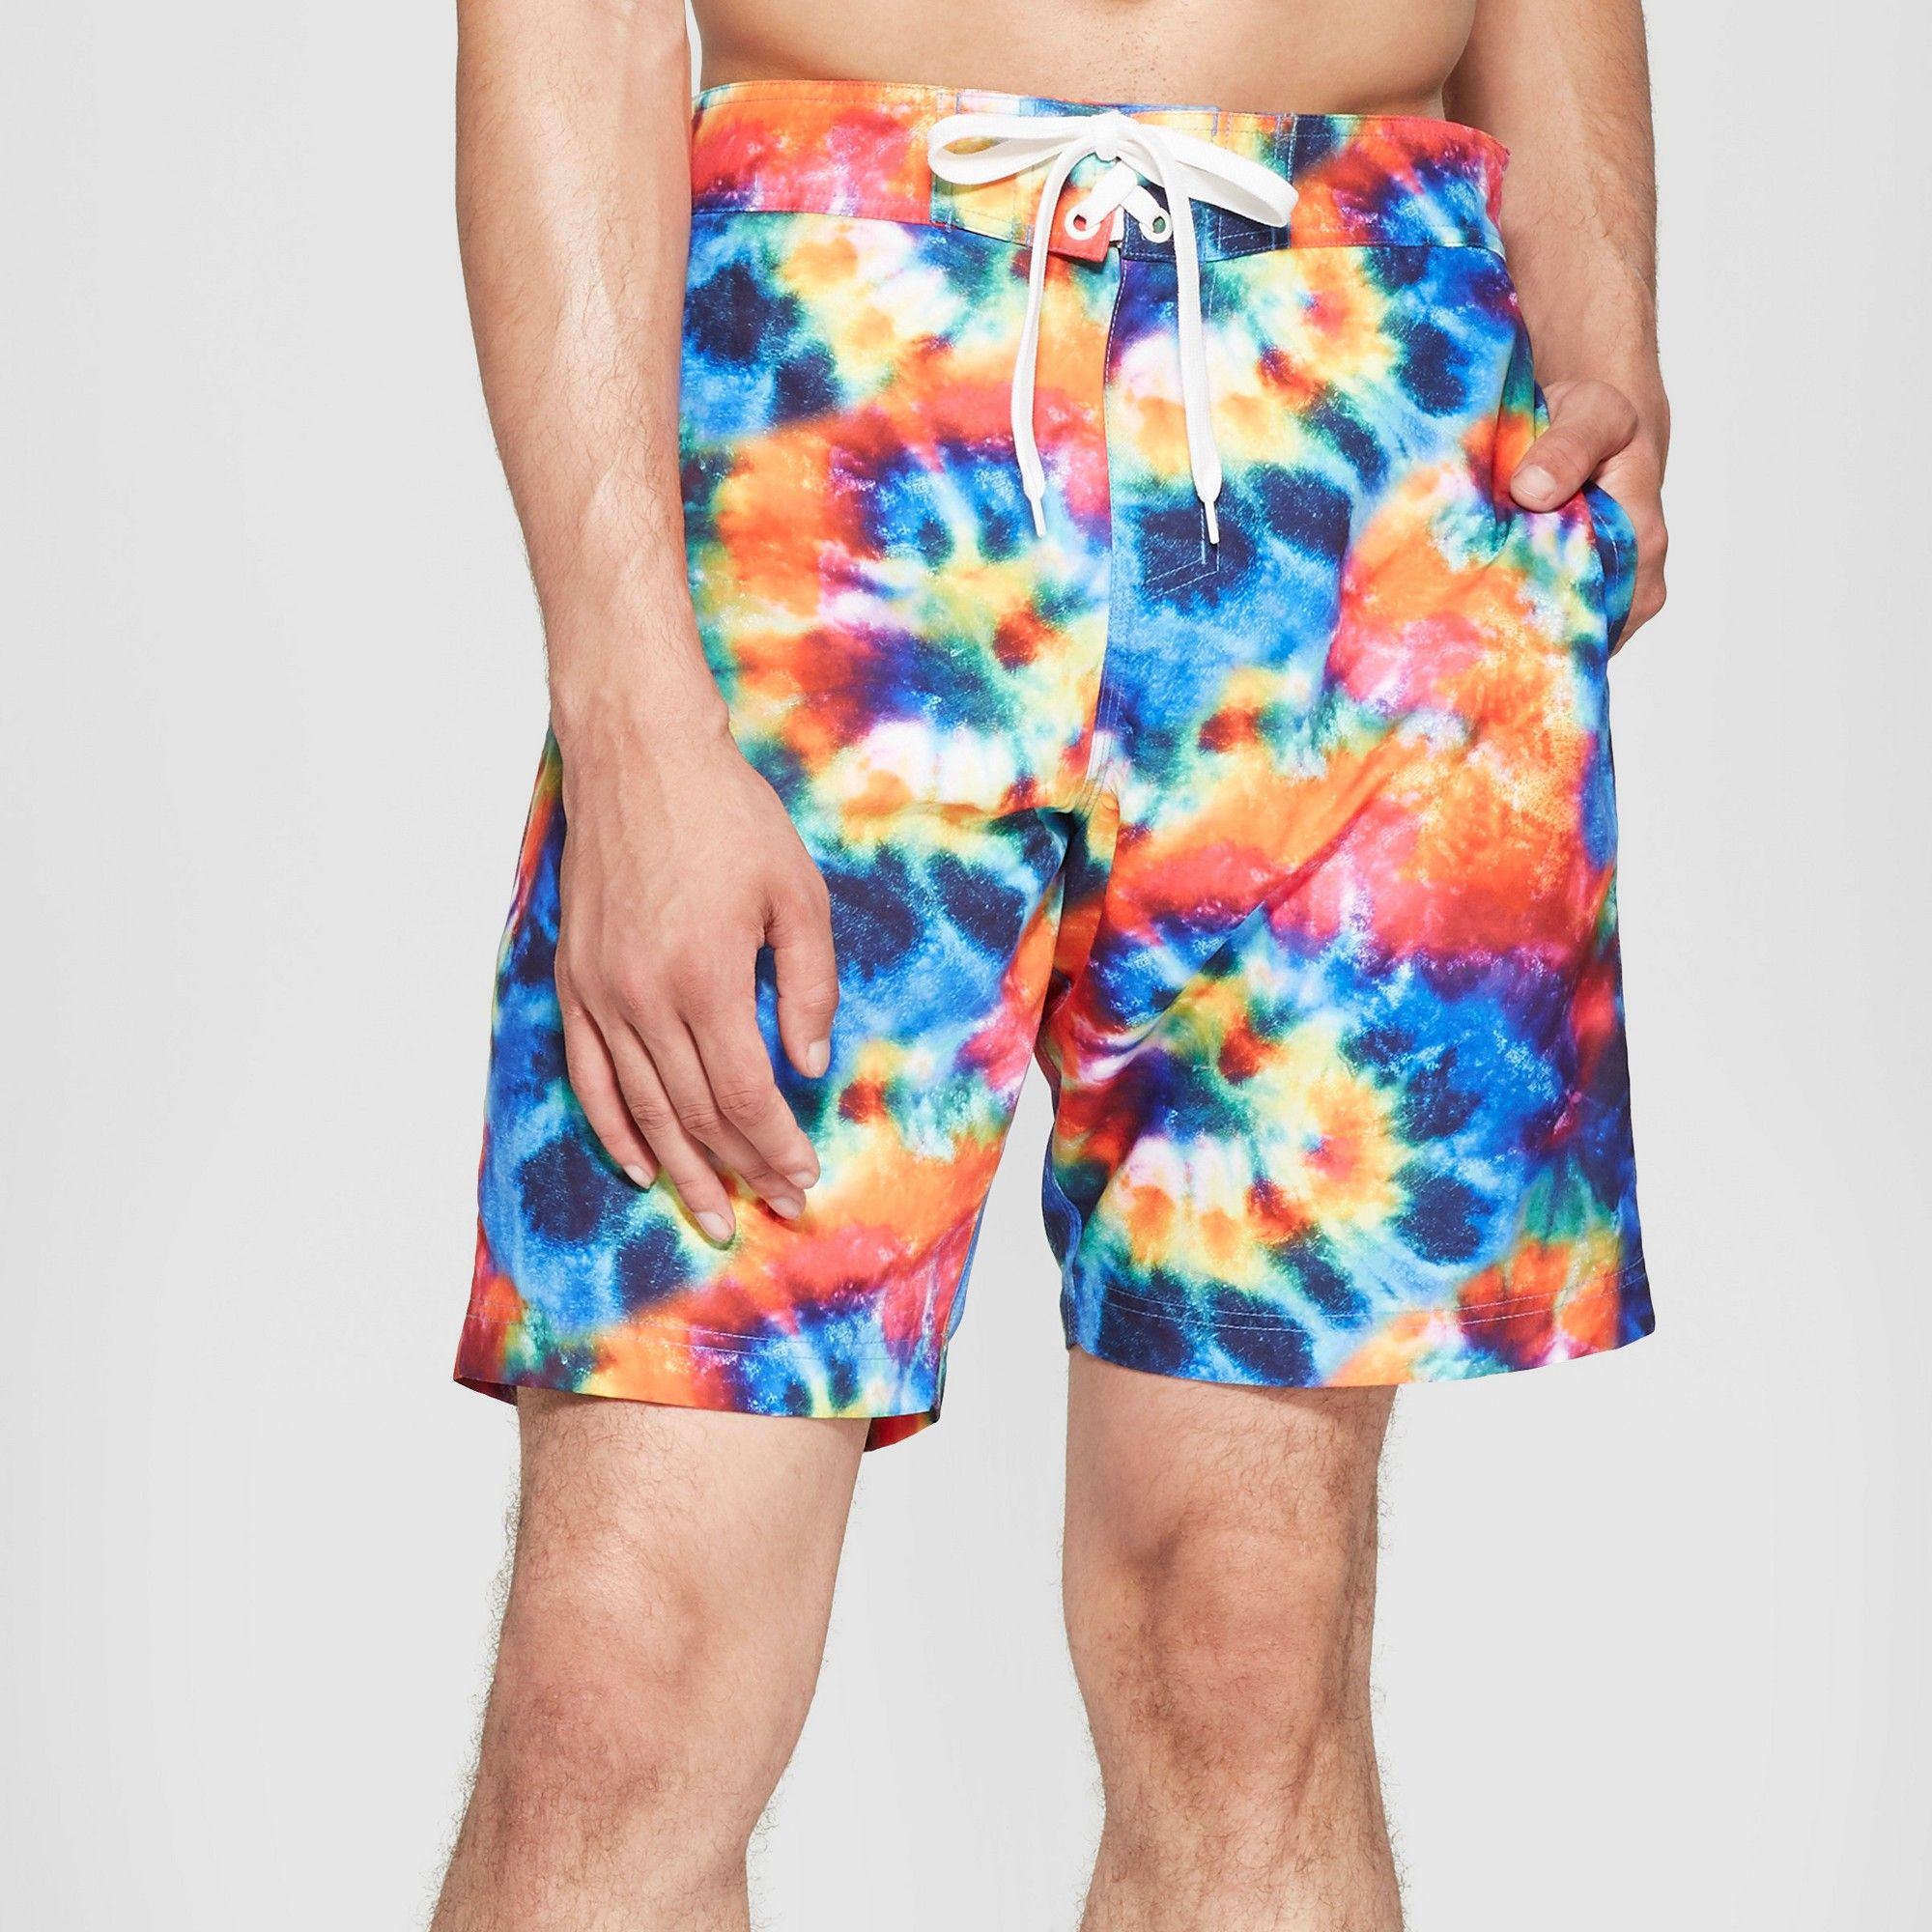 246d5f9111 Men's 9.5 Board Shorts - Rainbow 2XL, Multicolored in 2019 ...